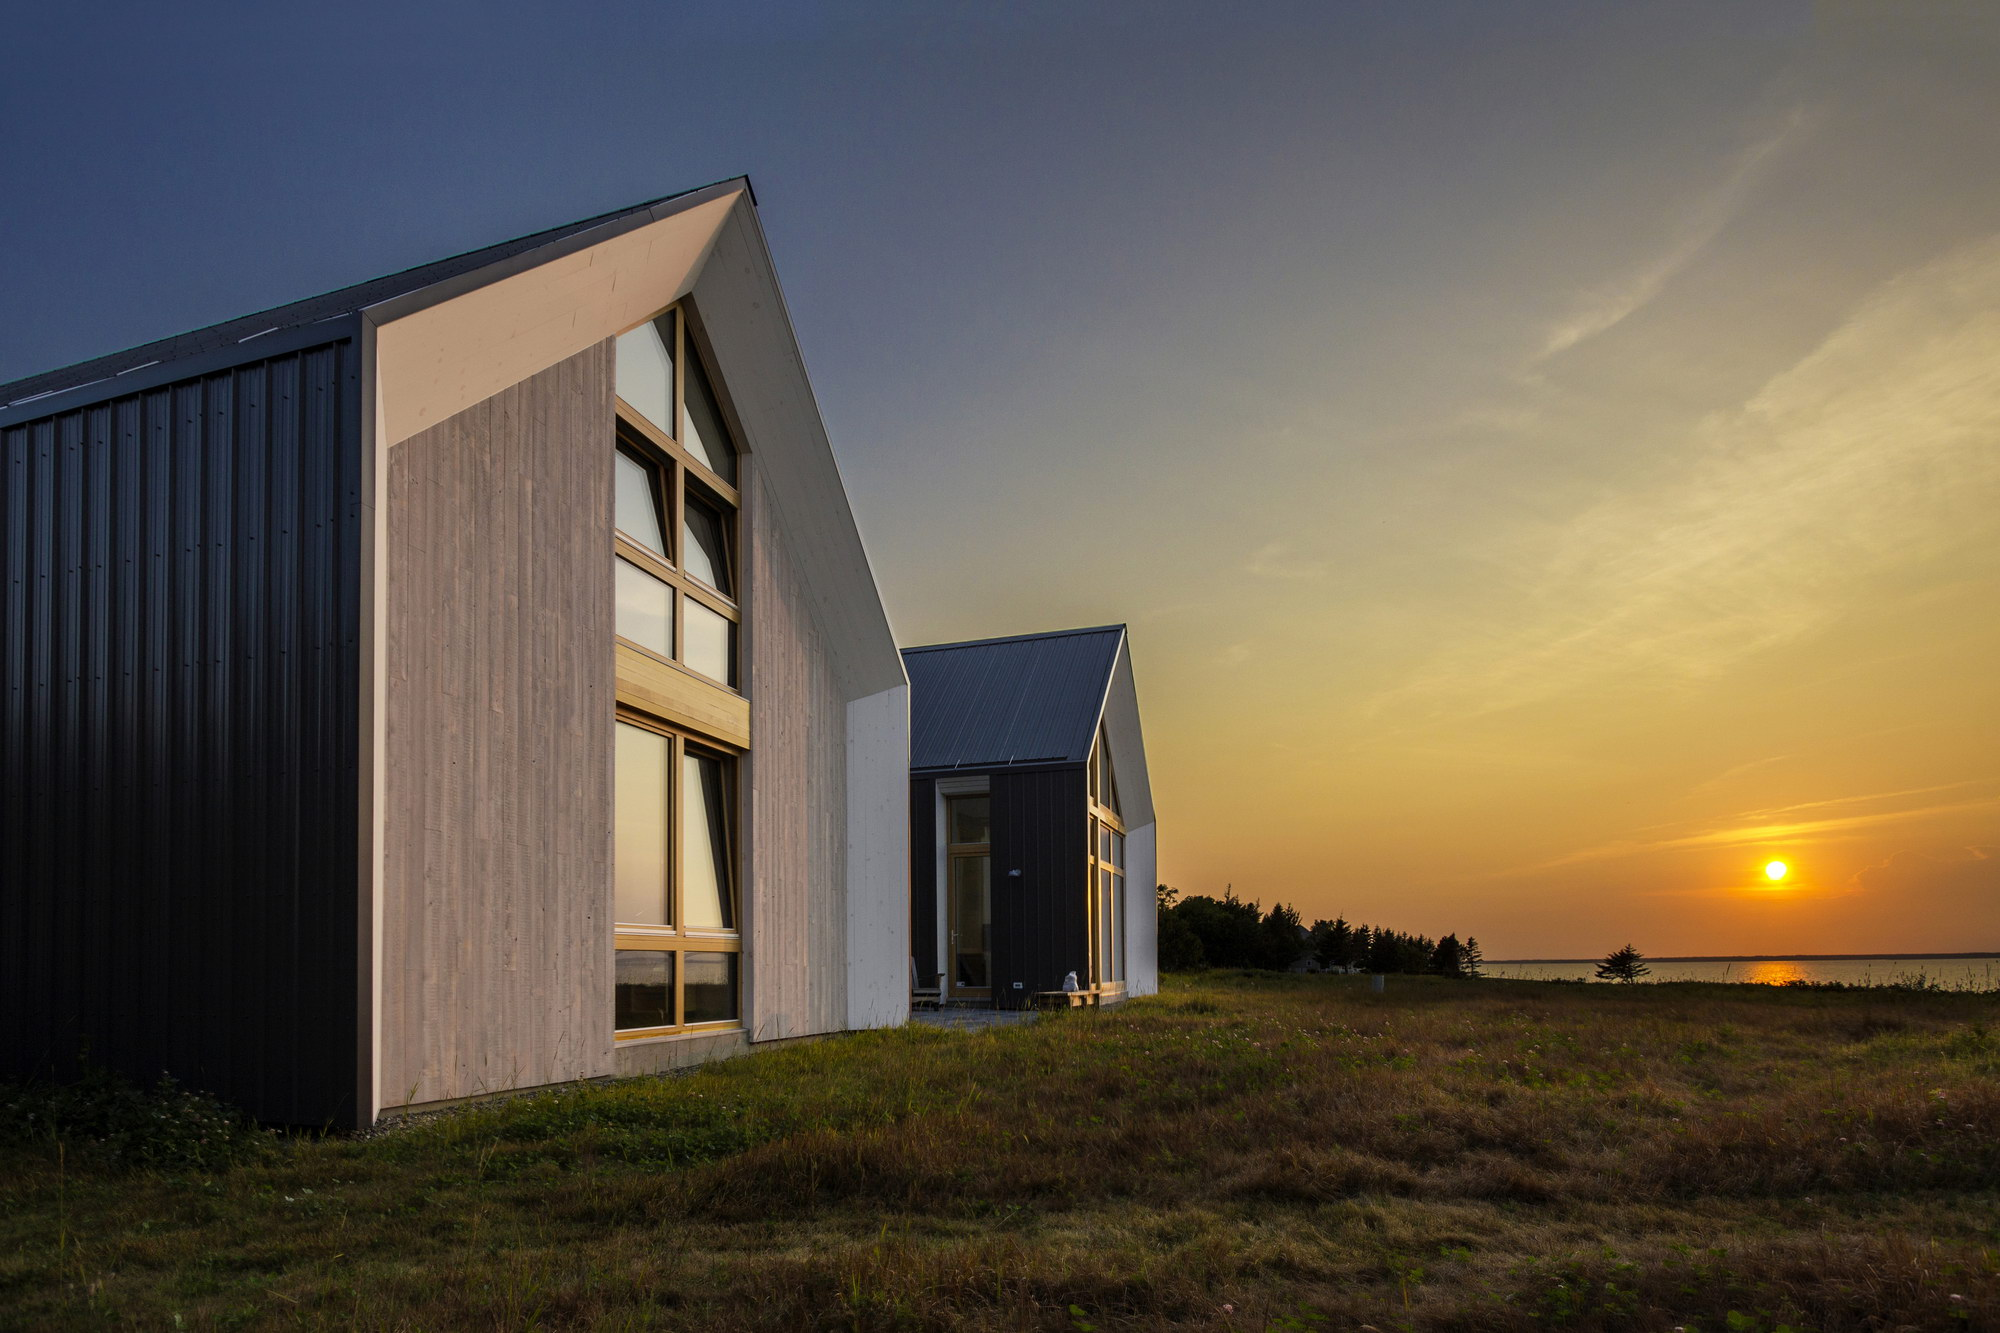 Les Jumelles | The Twins Houses by YH2